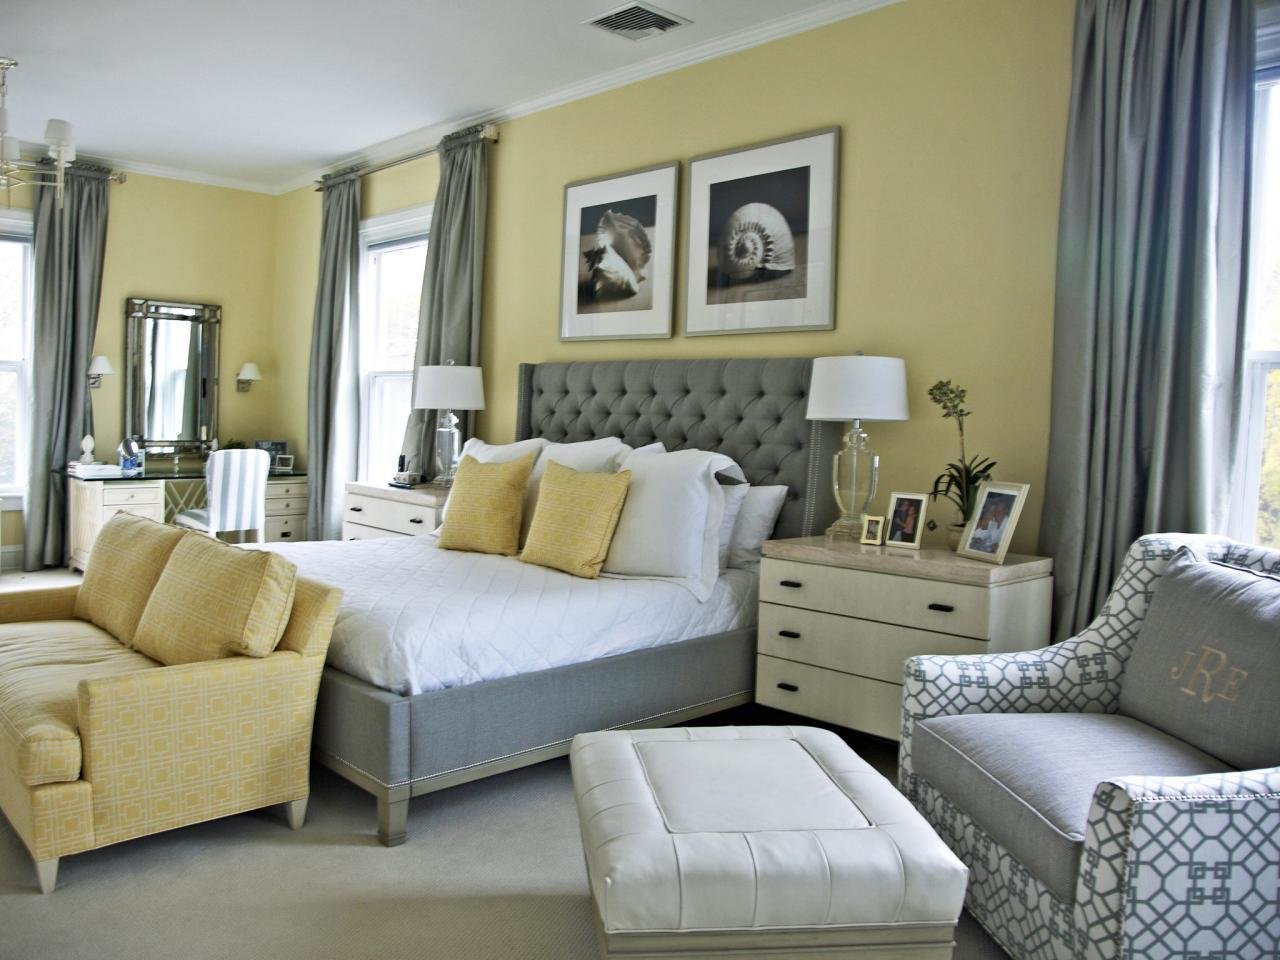 Best Royal Blue Painted Bed Room Blue And Coral Bedroom Royal With Pictures